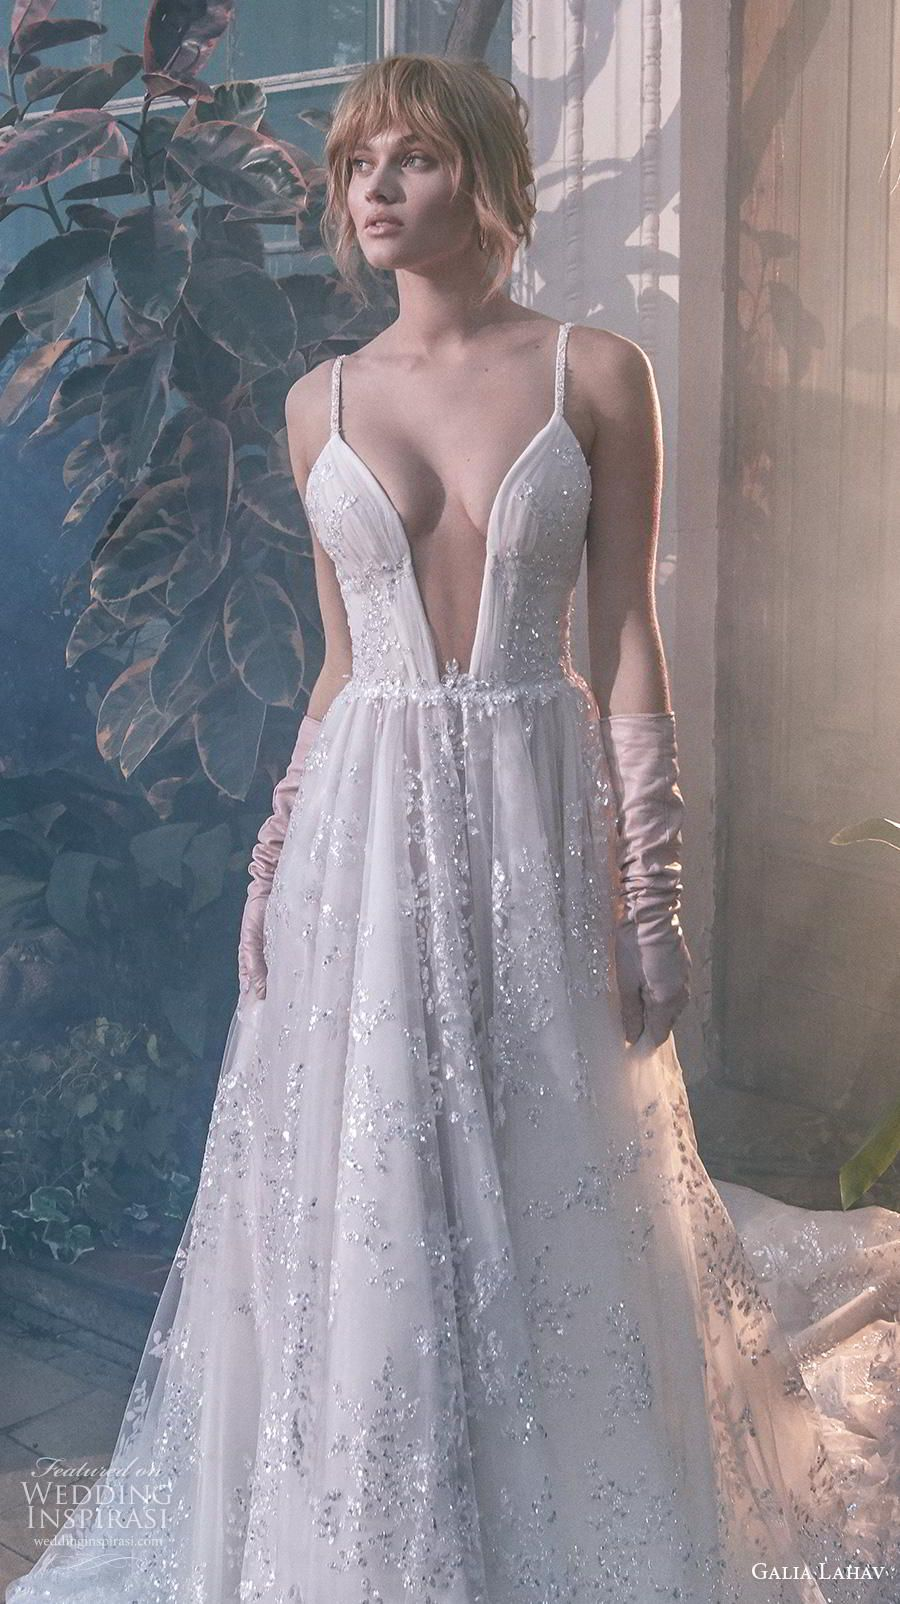 These 13 Looks Prove That Fairytale Wedding Dresses Can